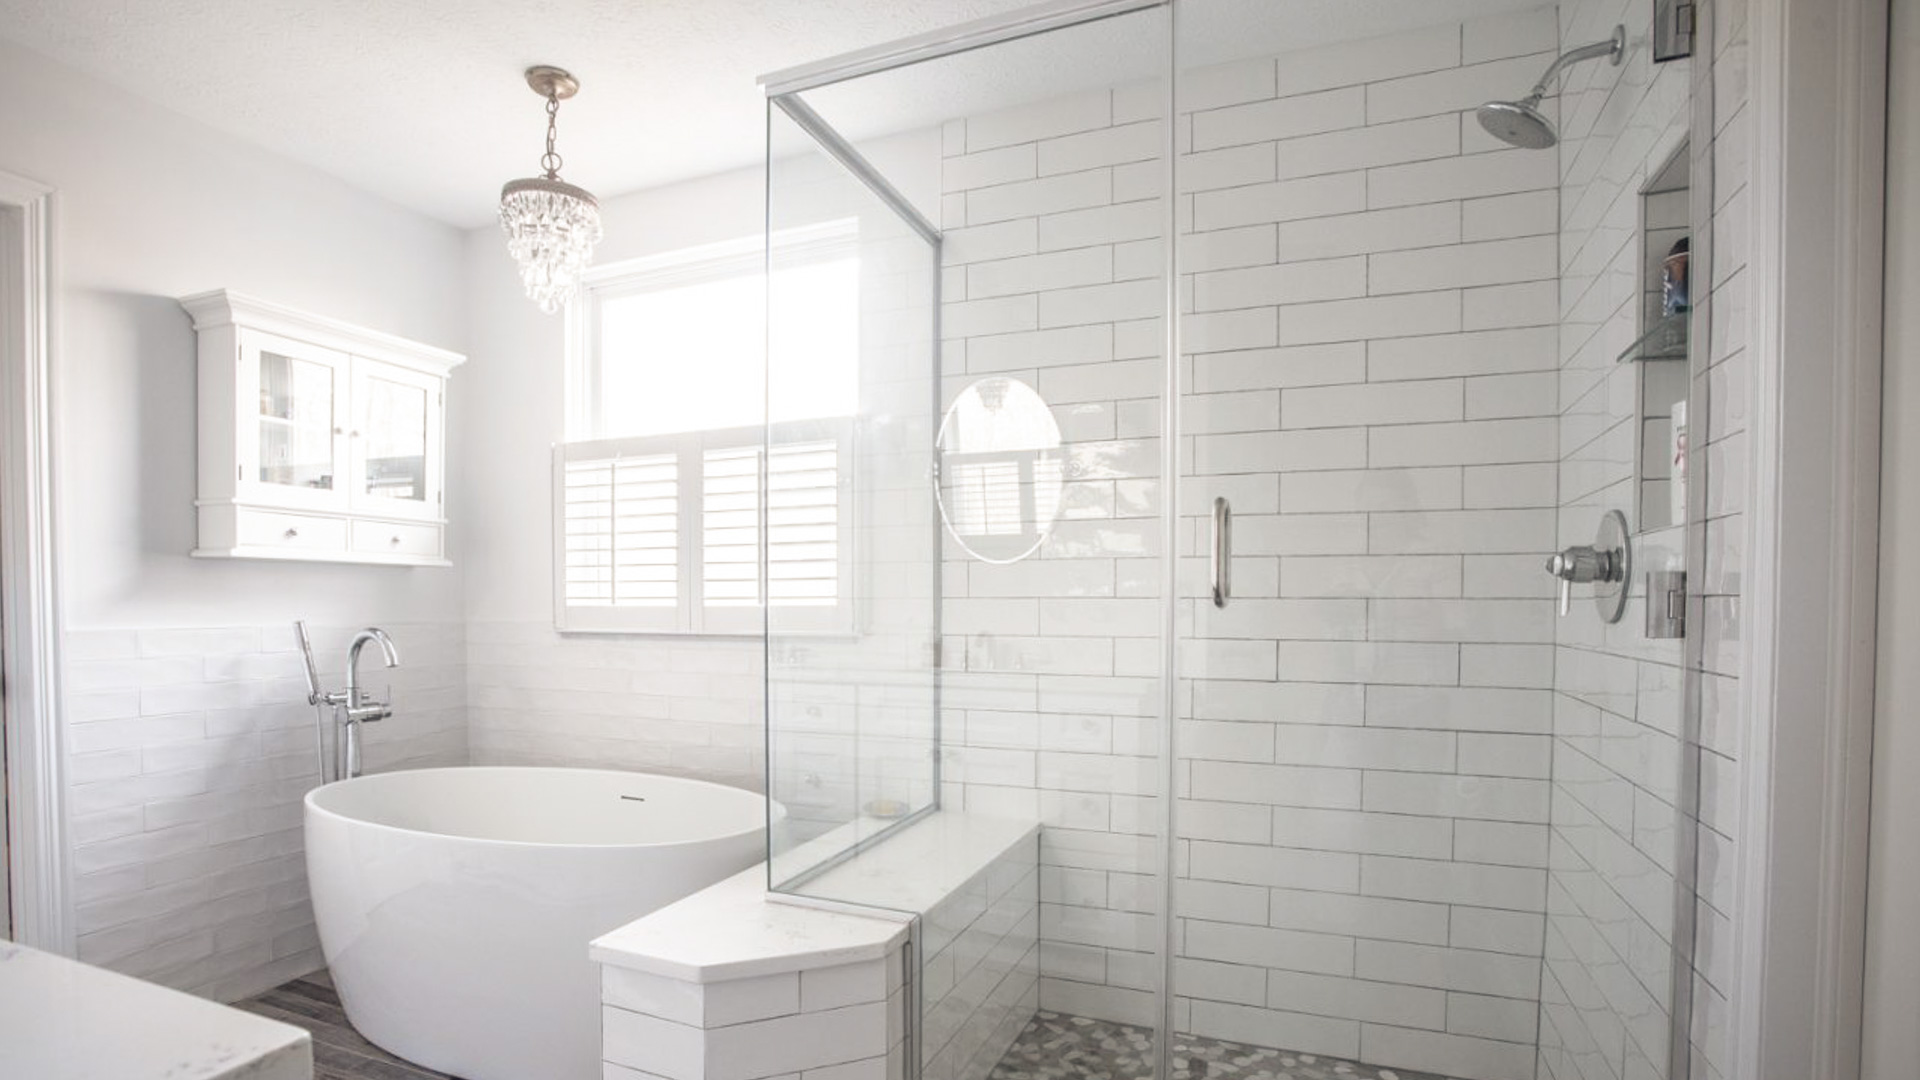 Your 10-step guide to installing a custom shower enclosure